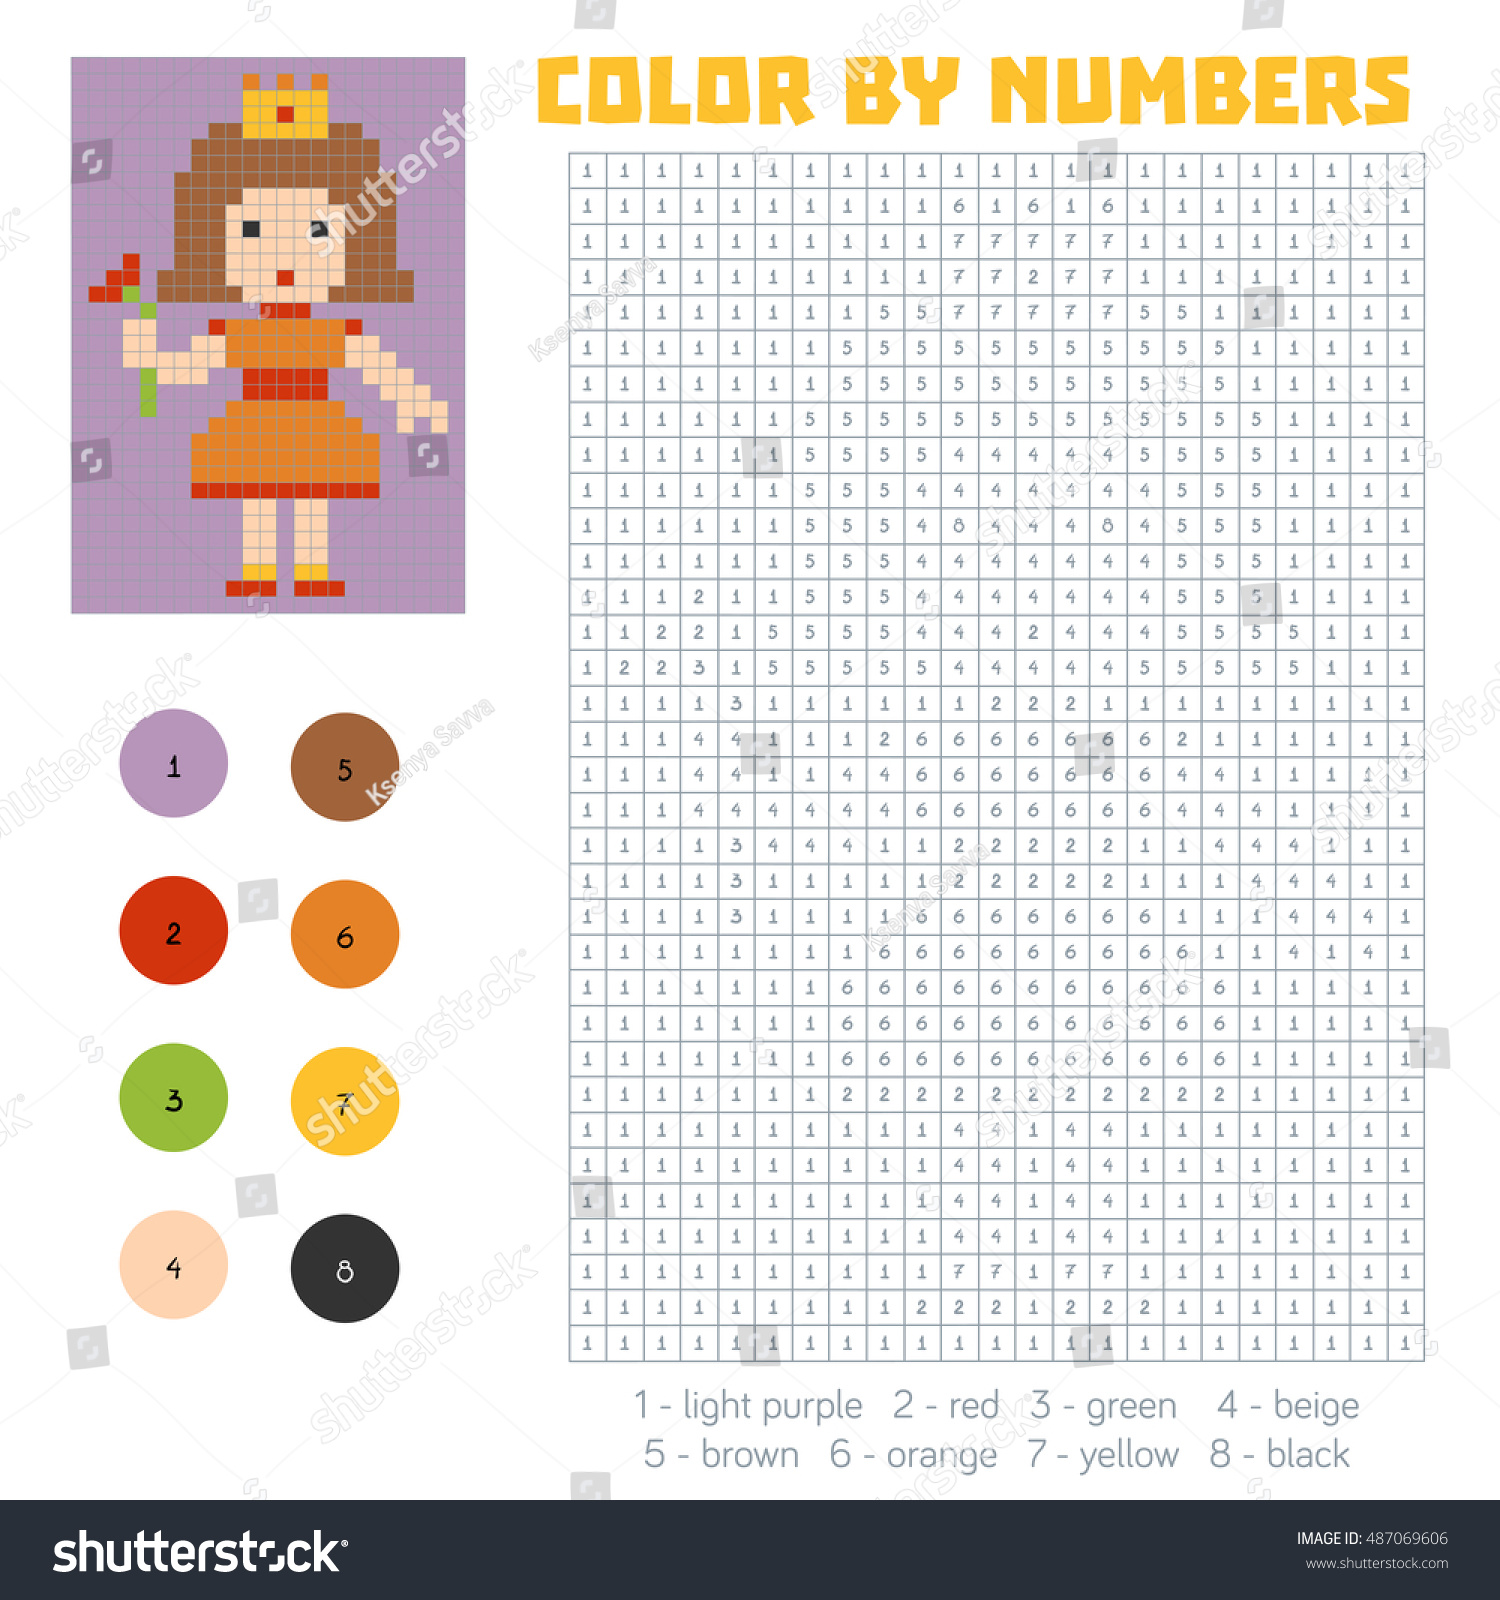 Game color by numbers - Color By Number Education Game For Children Princess Preview Save To A Lightbox